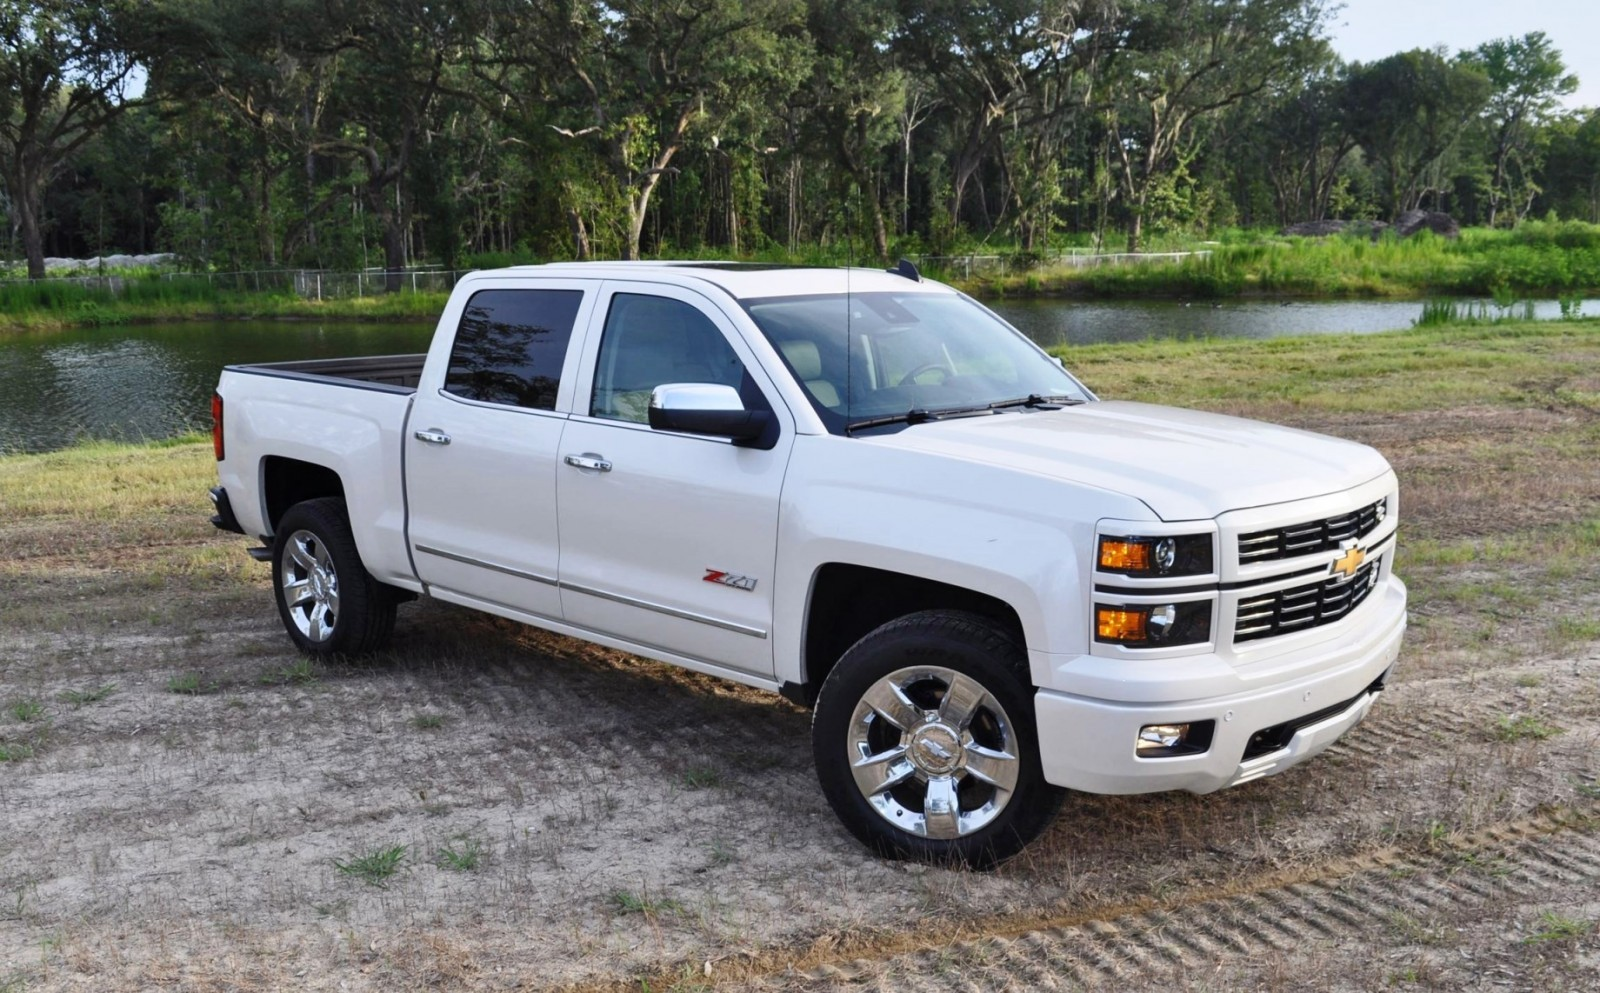 2015 chevrolet silverado ltz z71 4wd custom sport edition 29. Black Bedroom Furniture Sets. Home Design Ideas